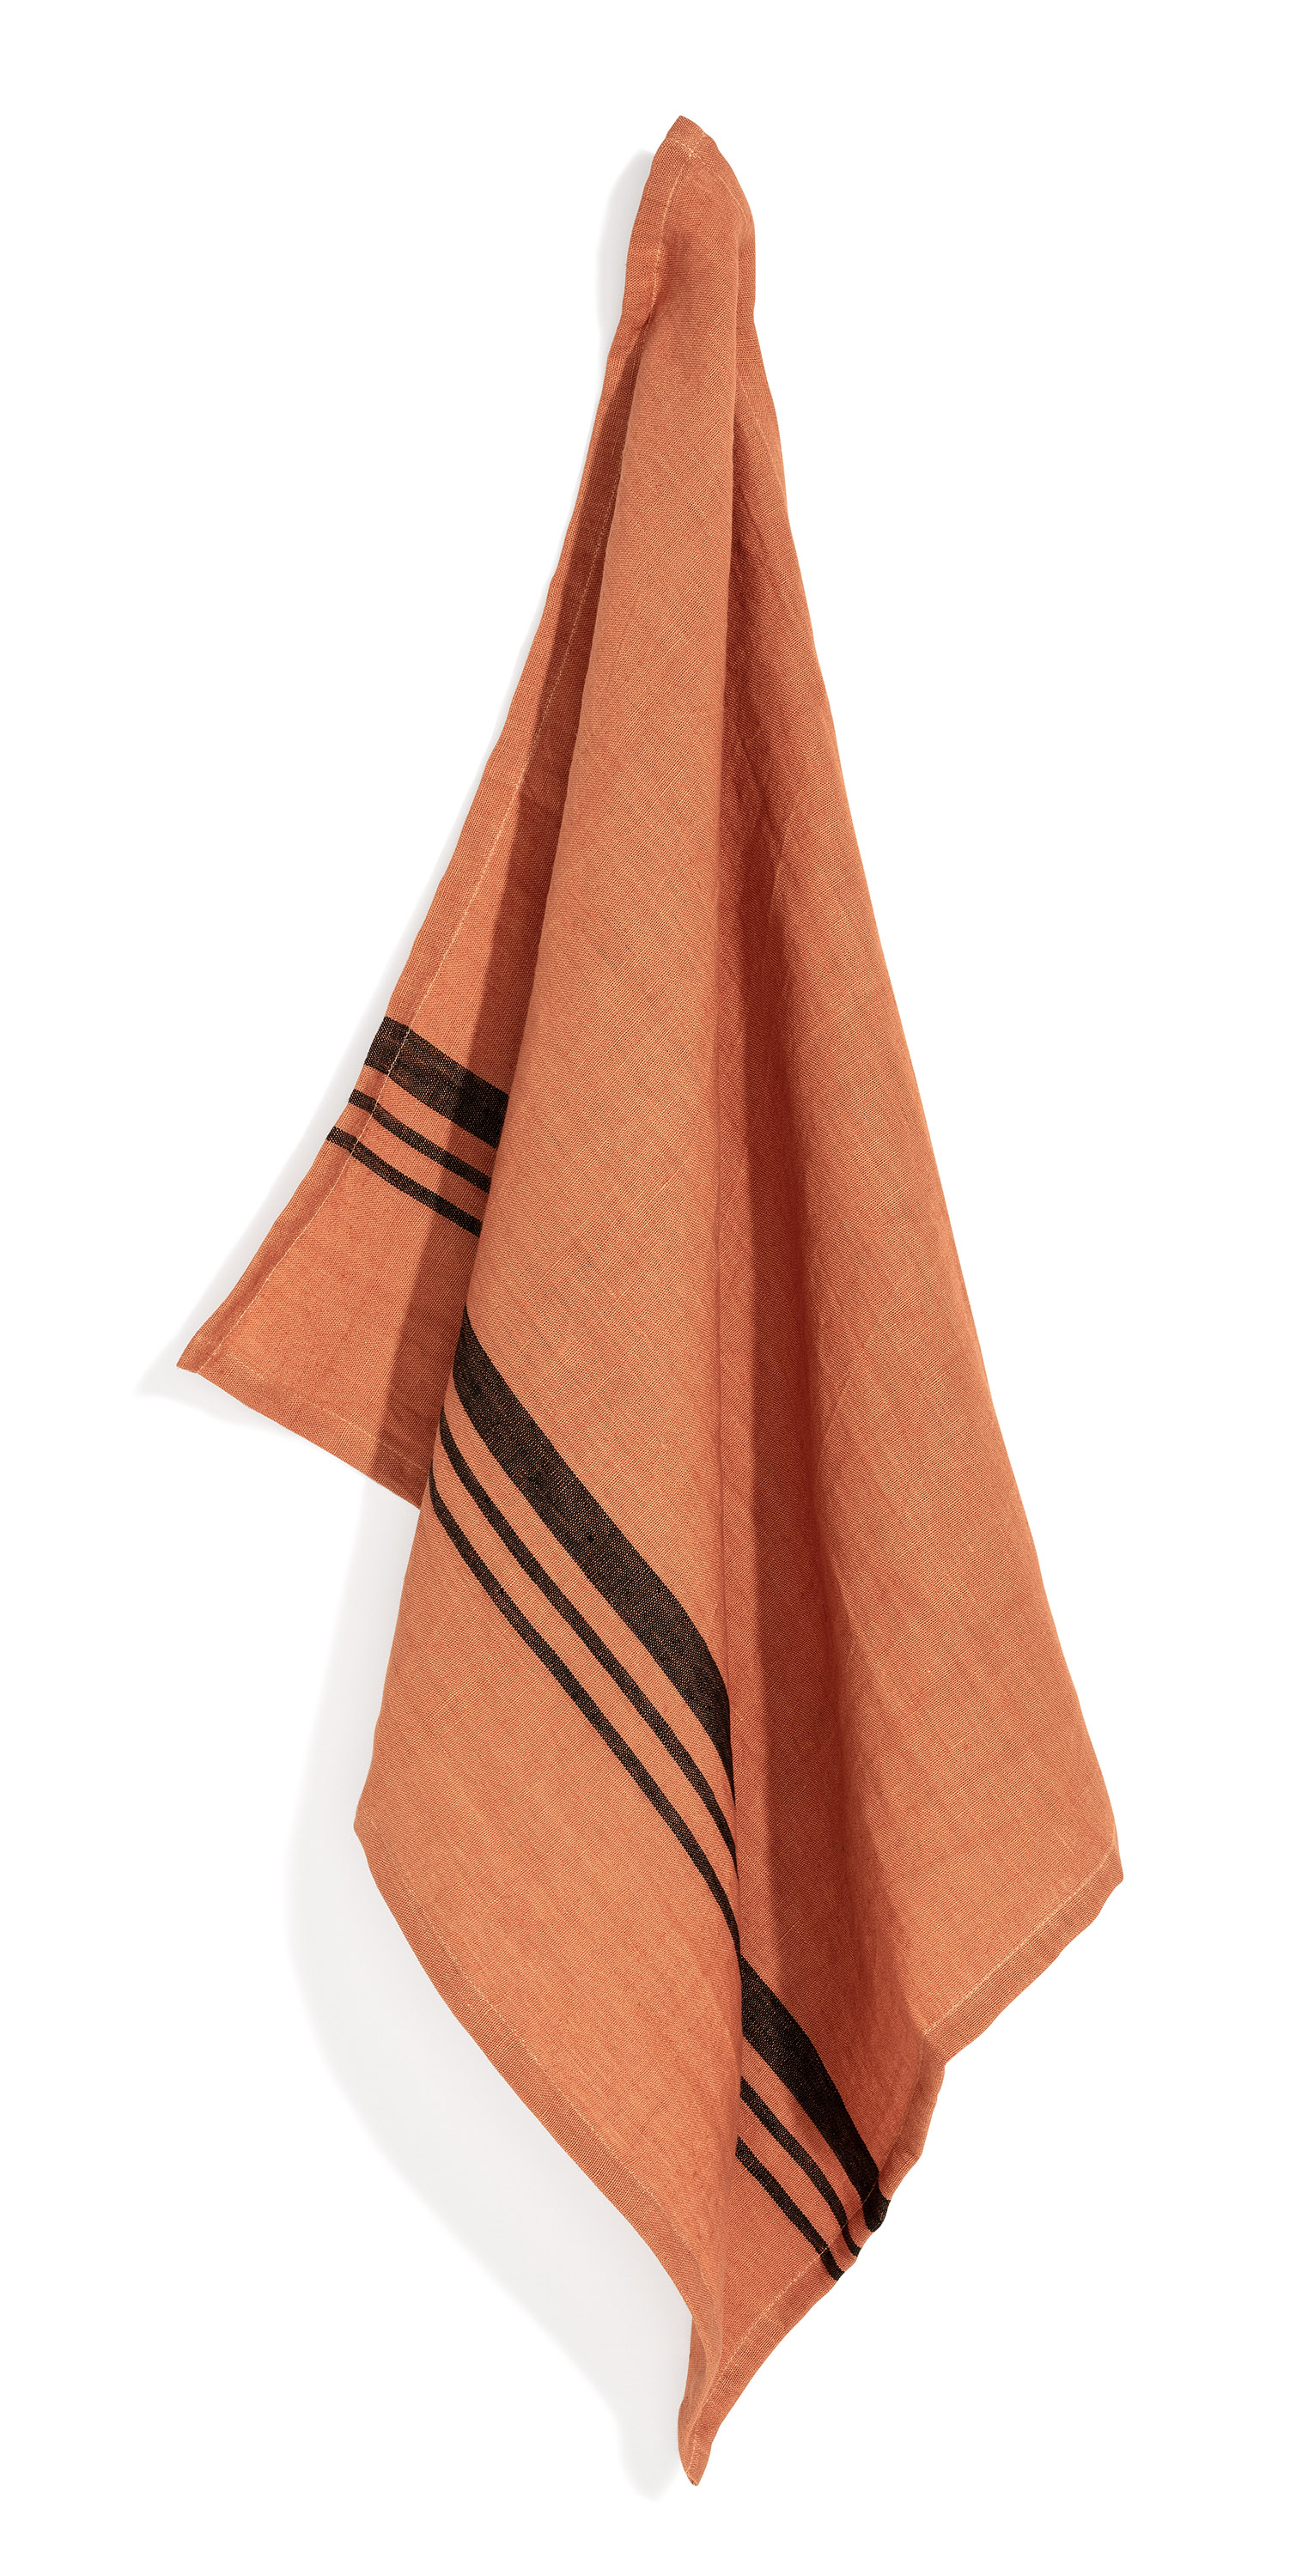 Leary towel strip dry terracotta 50x70